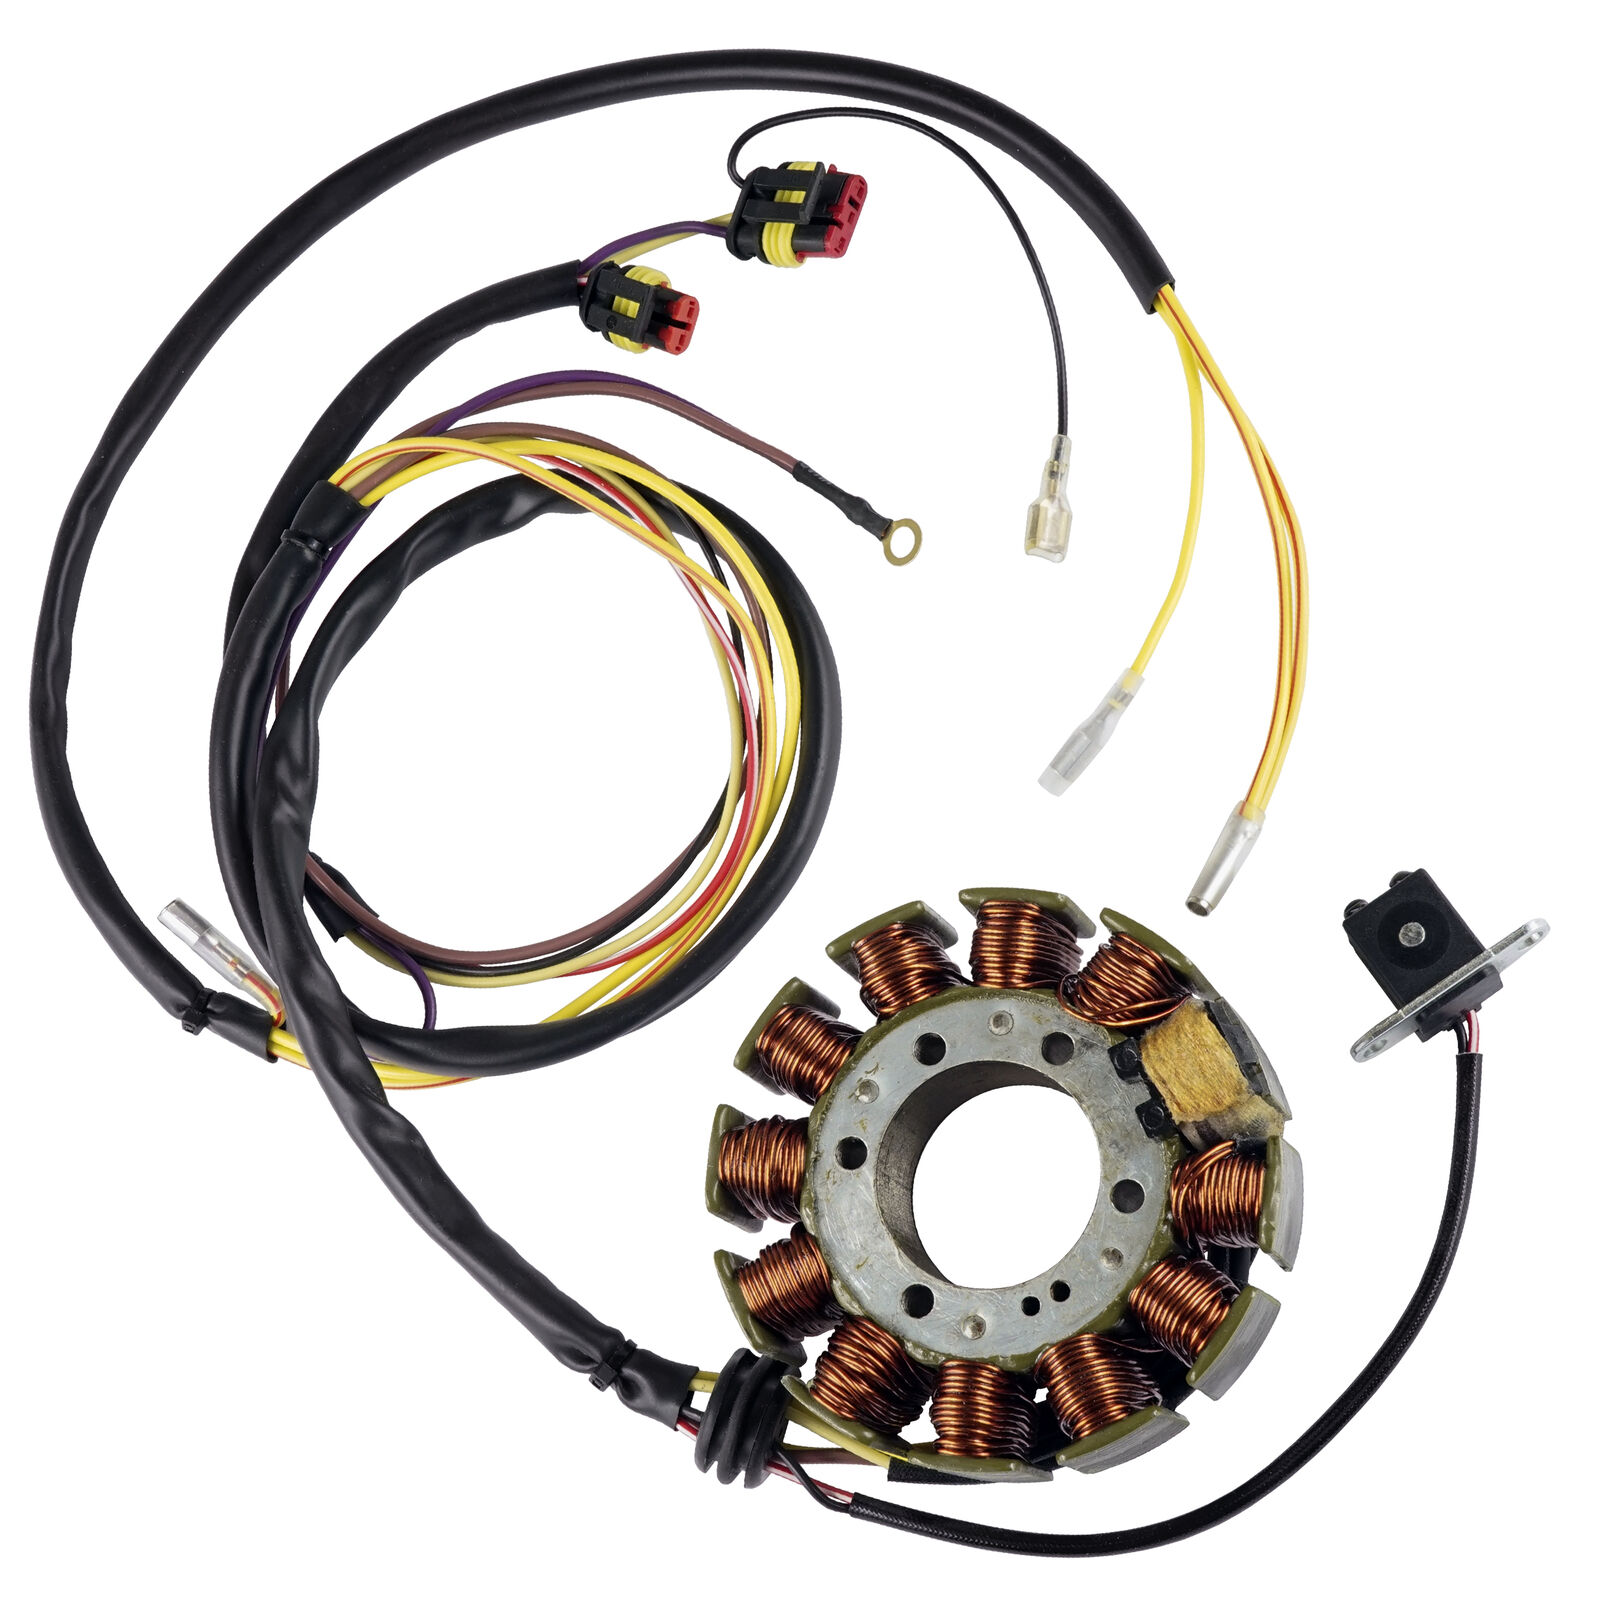 Stator Fits Polaris Sportsman 700 Carb 2002 2003 2004 Magneto Fuel Filter 1 Of 1free Shipping